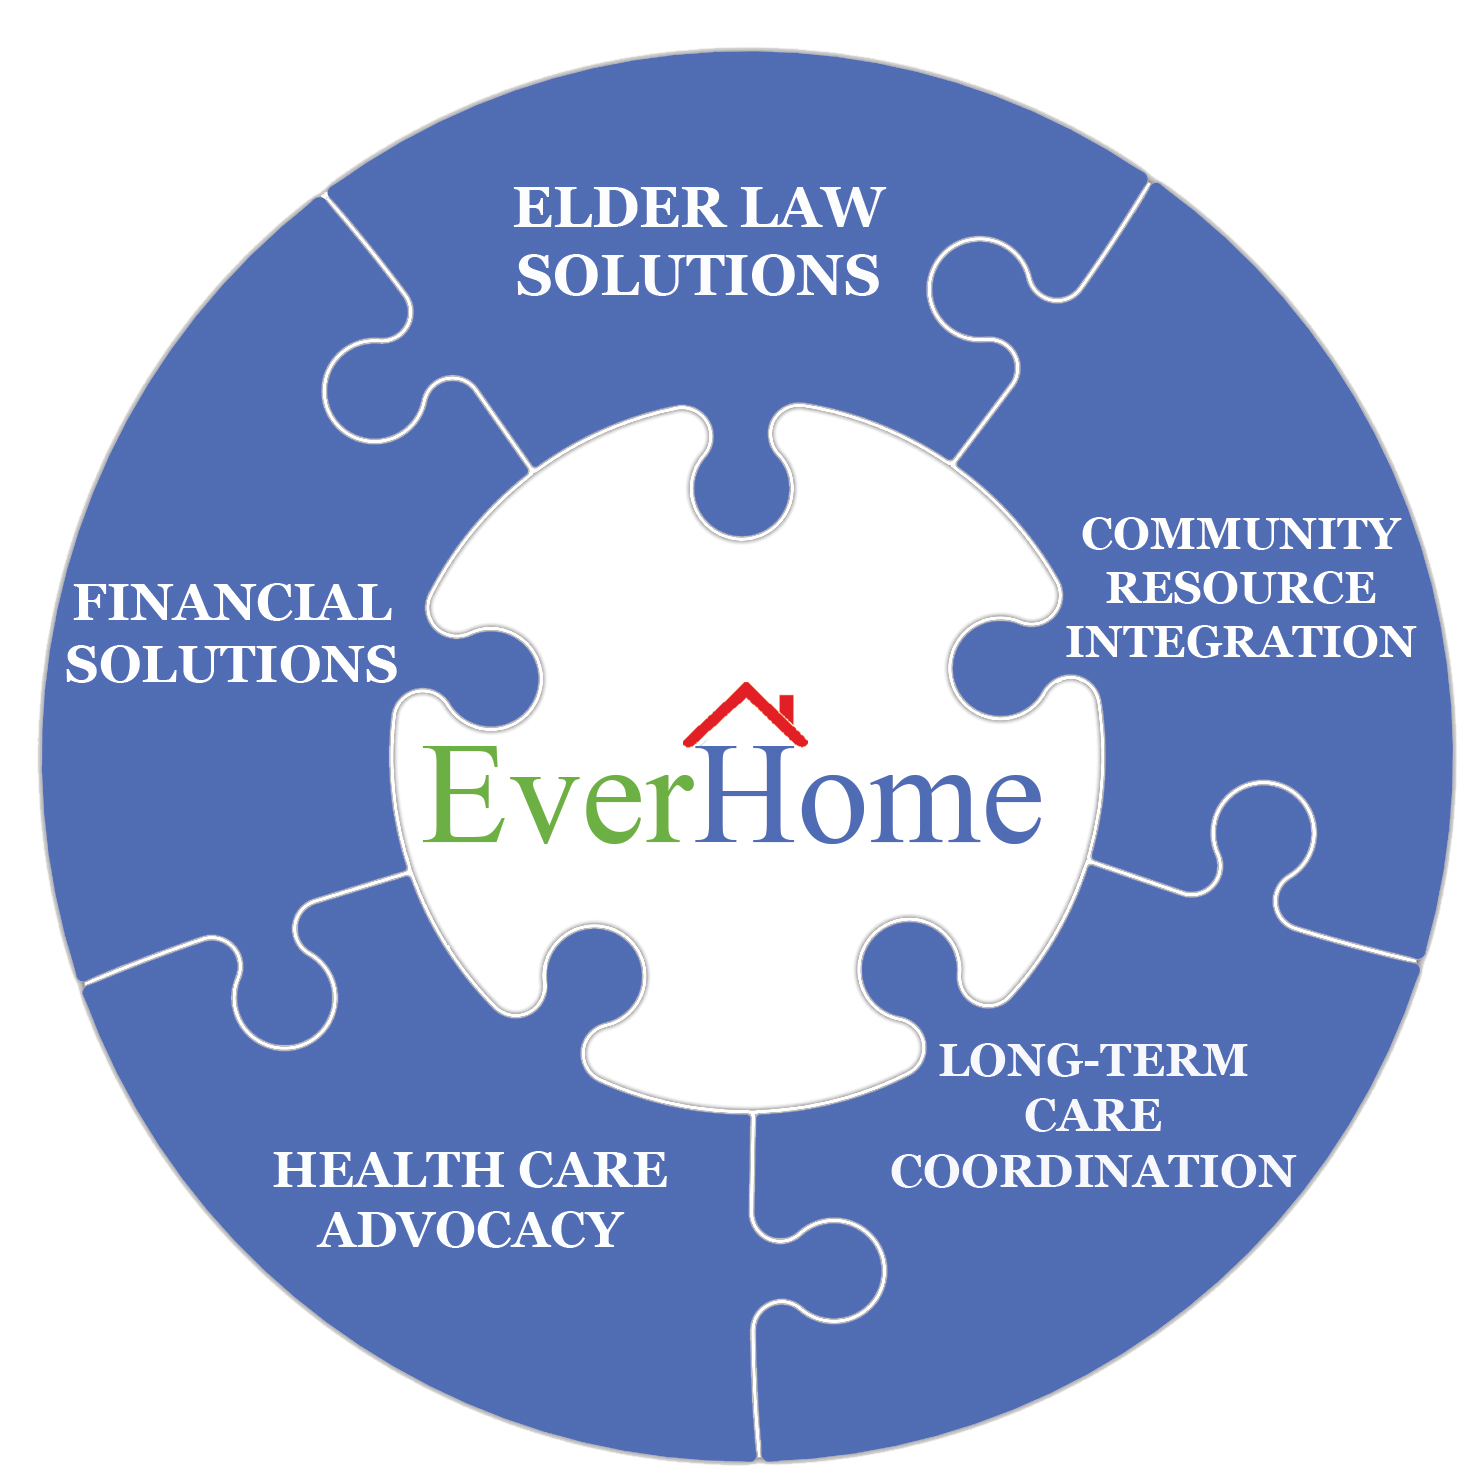 EverHome-Puzzle---rack-card.jpg